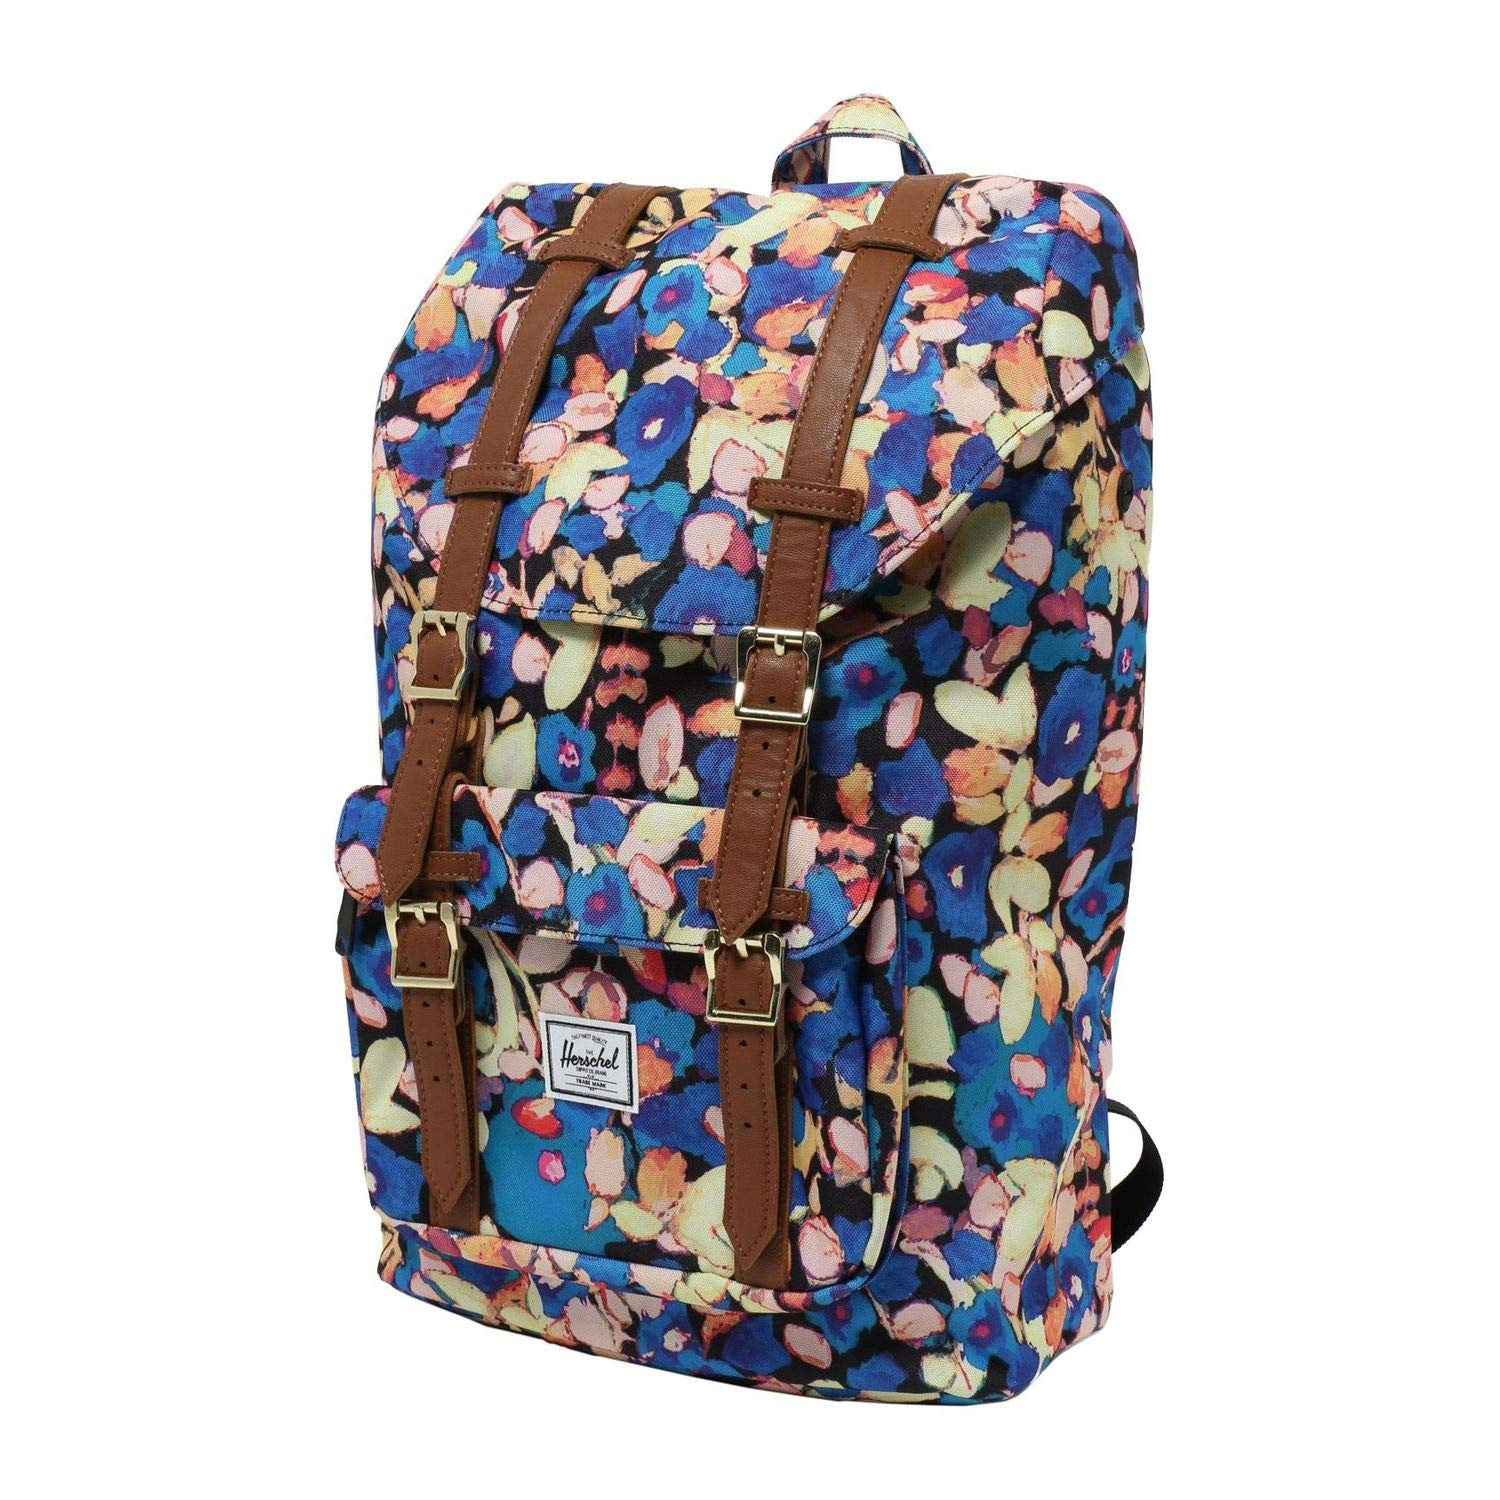 デイパック HERSCHEL ハーシェル 9111160 Little America Mid-Volume 9111160 PaintedFloralTanSyntheticLea O   B07QLS16J4